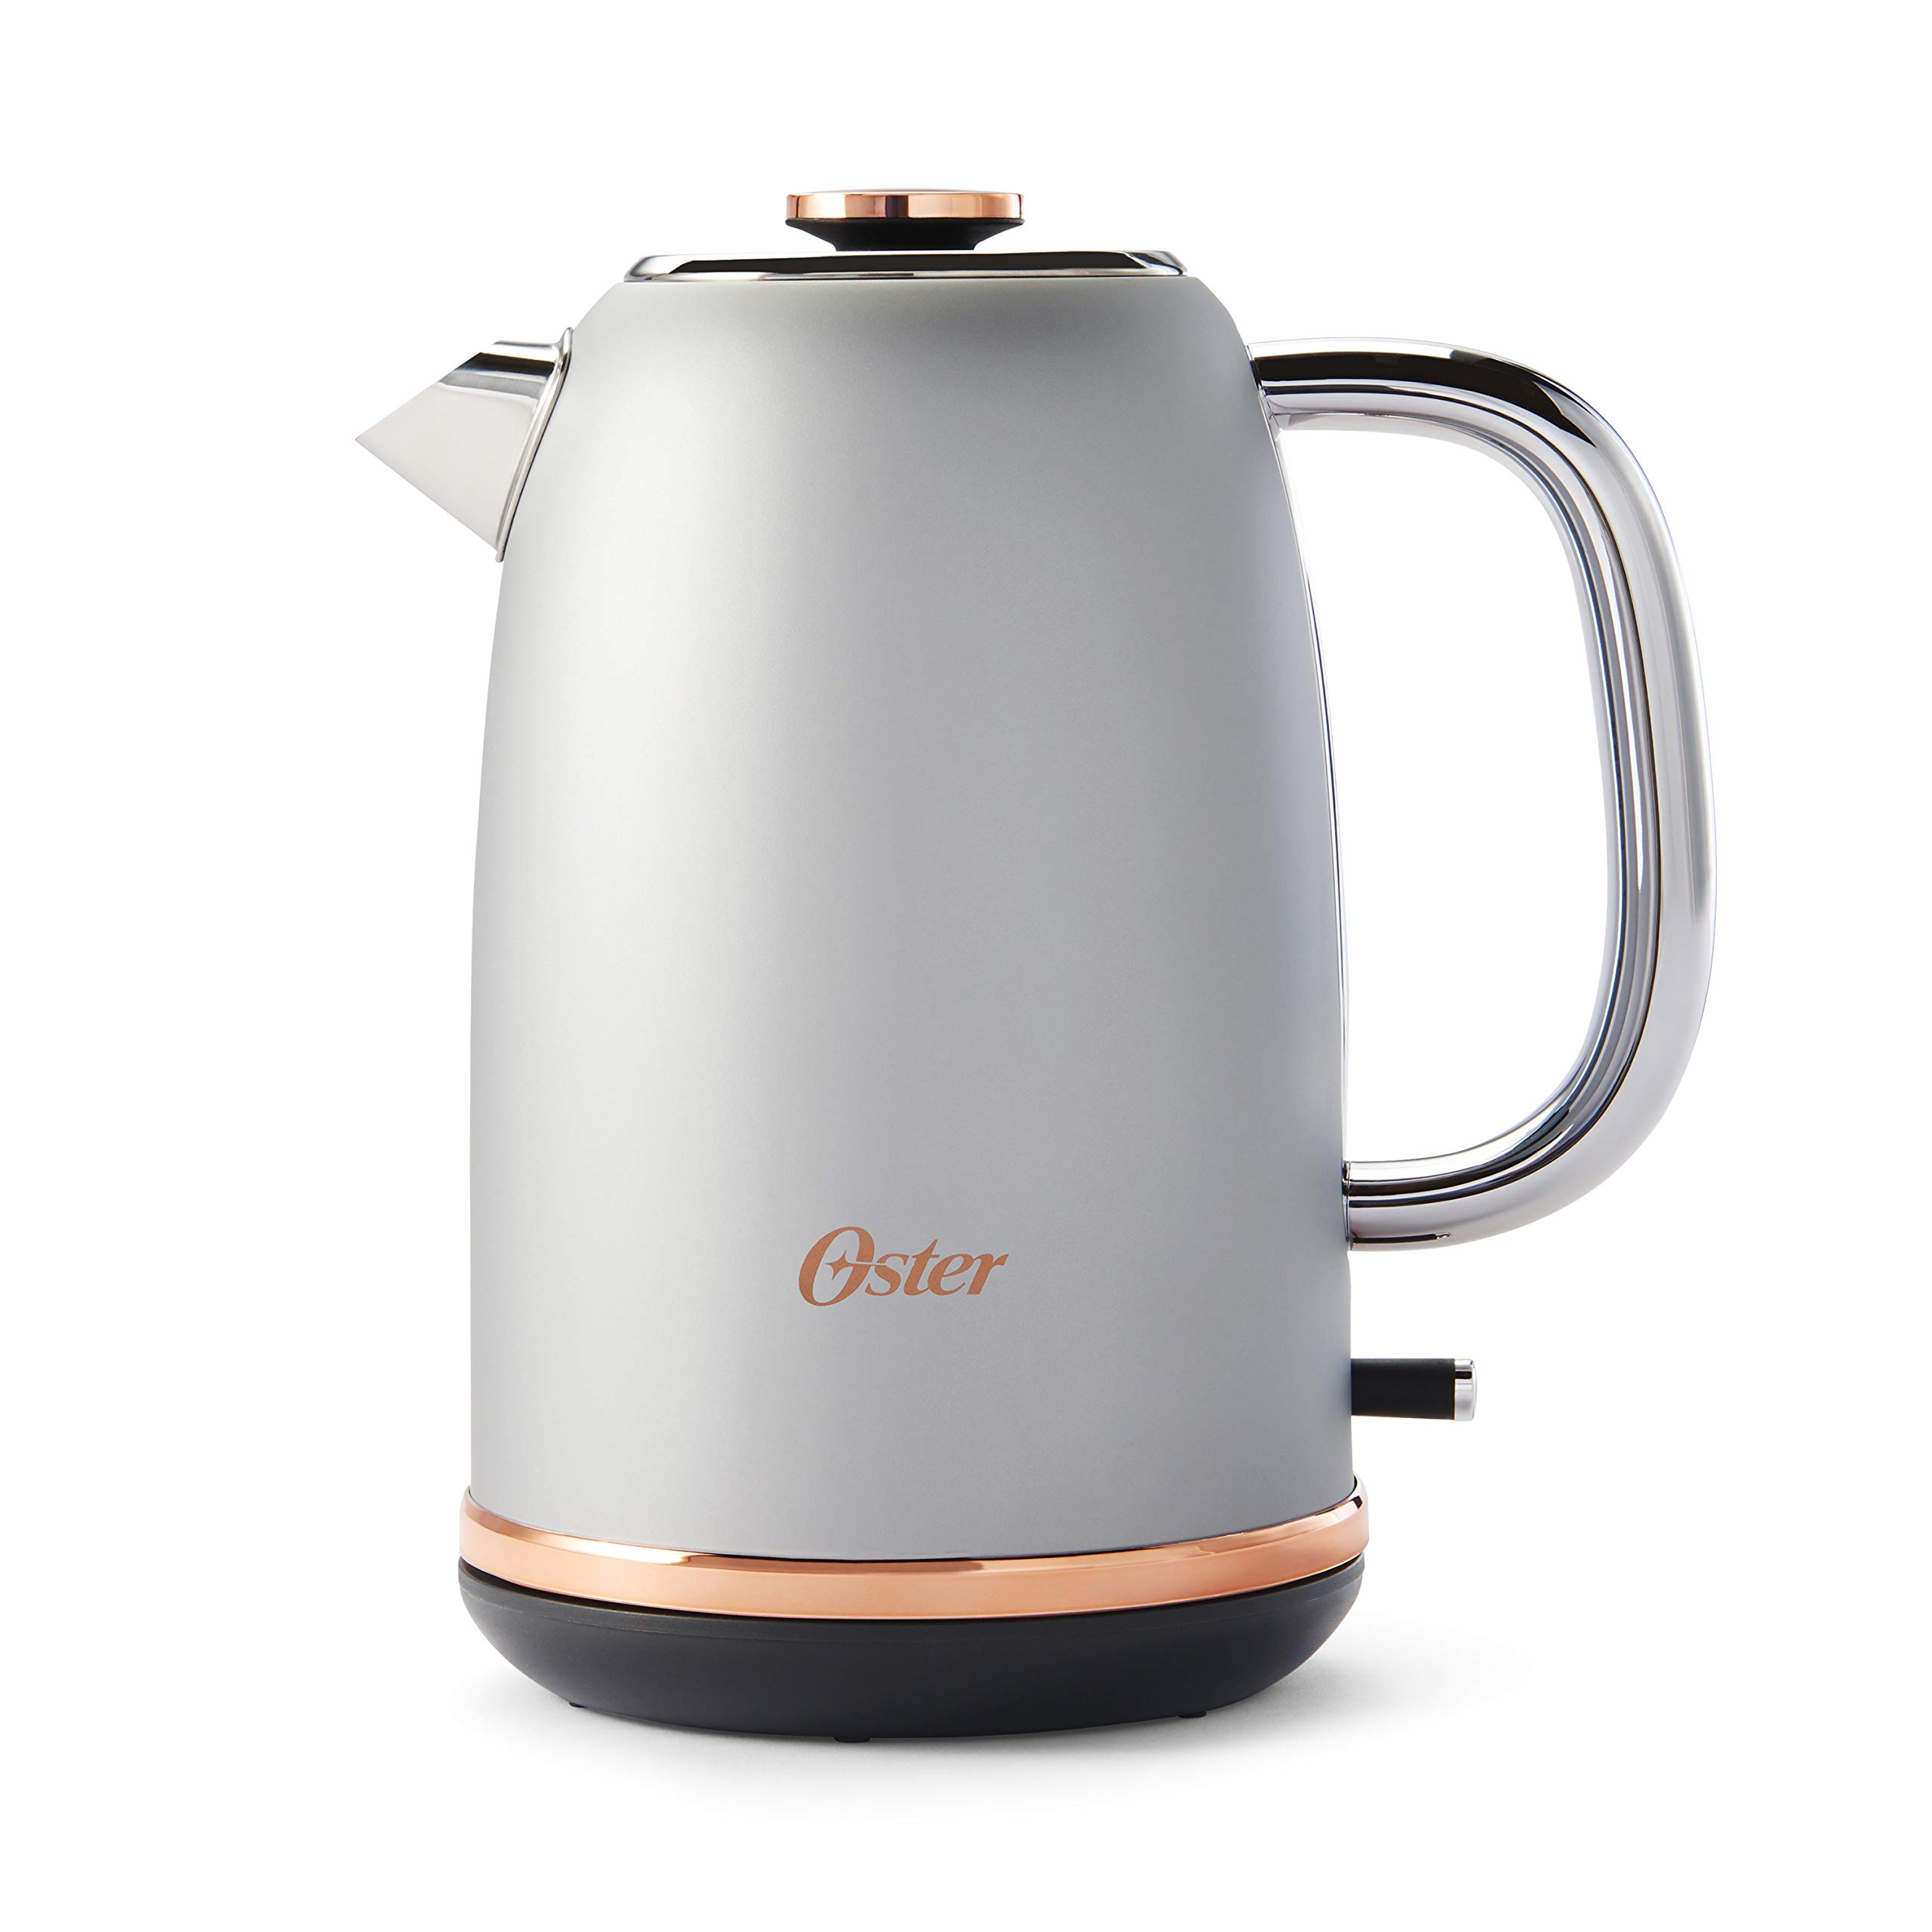 Oster 2097736 Electric Kettle Metropolitan Collection with Rose Gold Accents